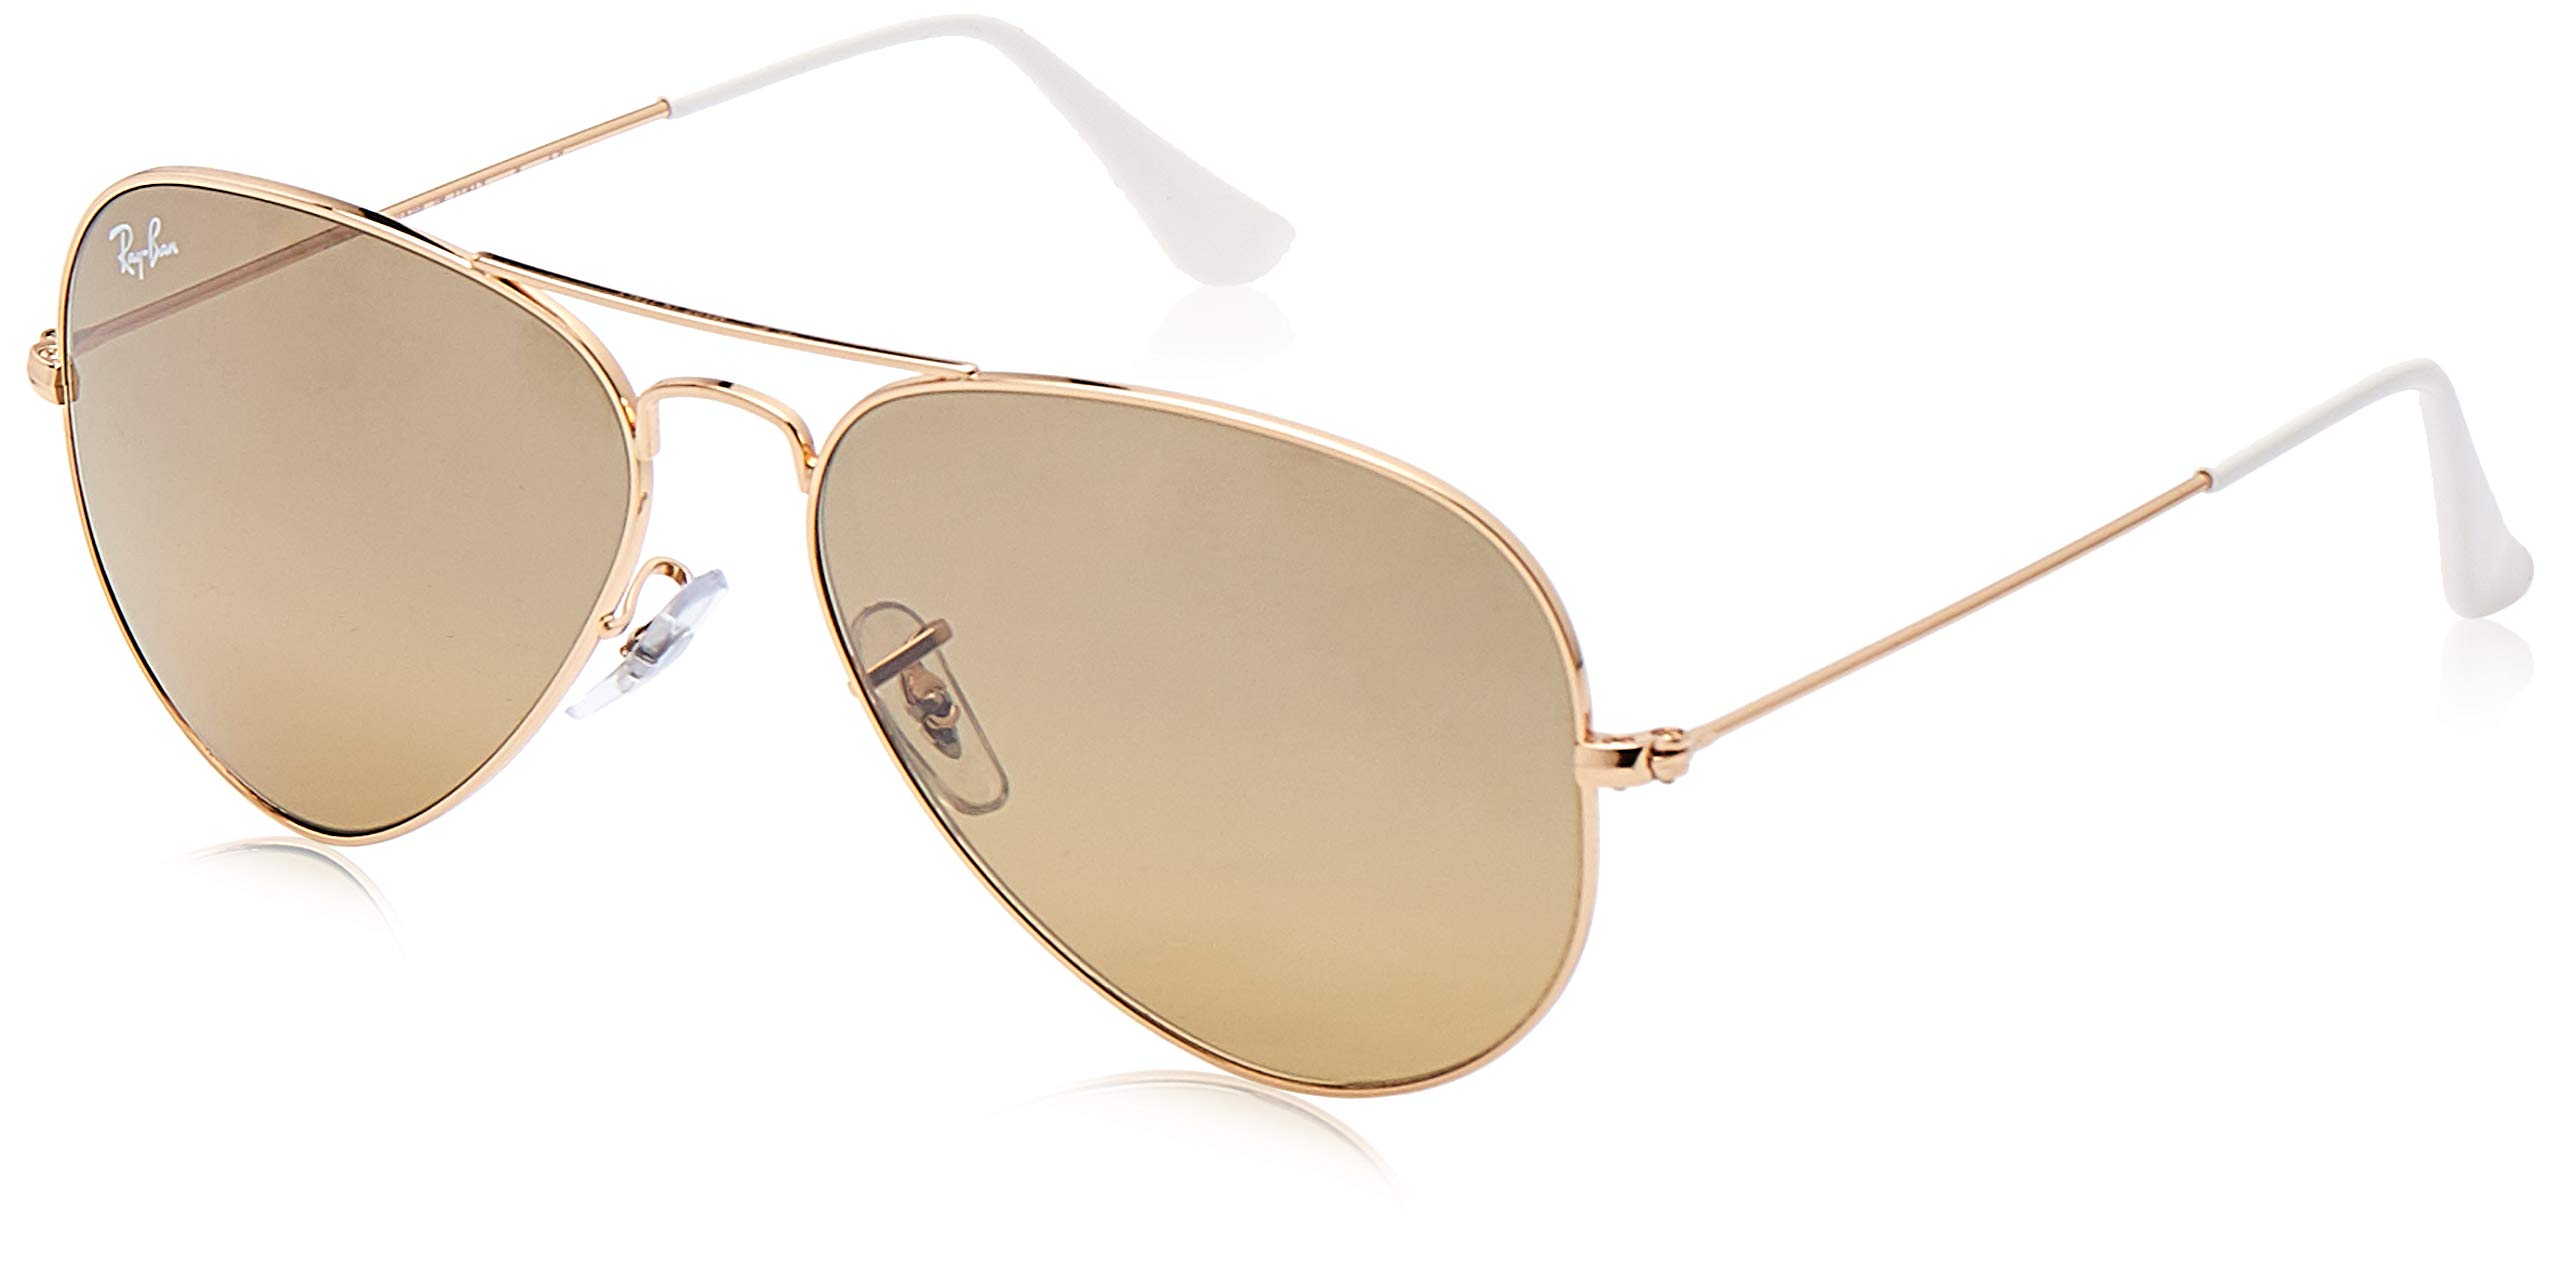 RAY-BAN RB3025 Aviator Large Metal Sunglasses, Gold/Brown Mirror Gradient, 58 mm by RAY-BAN